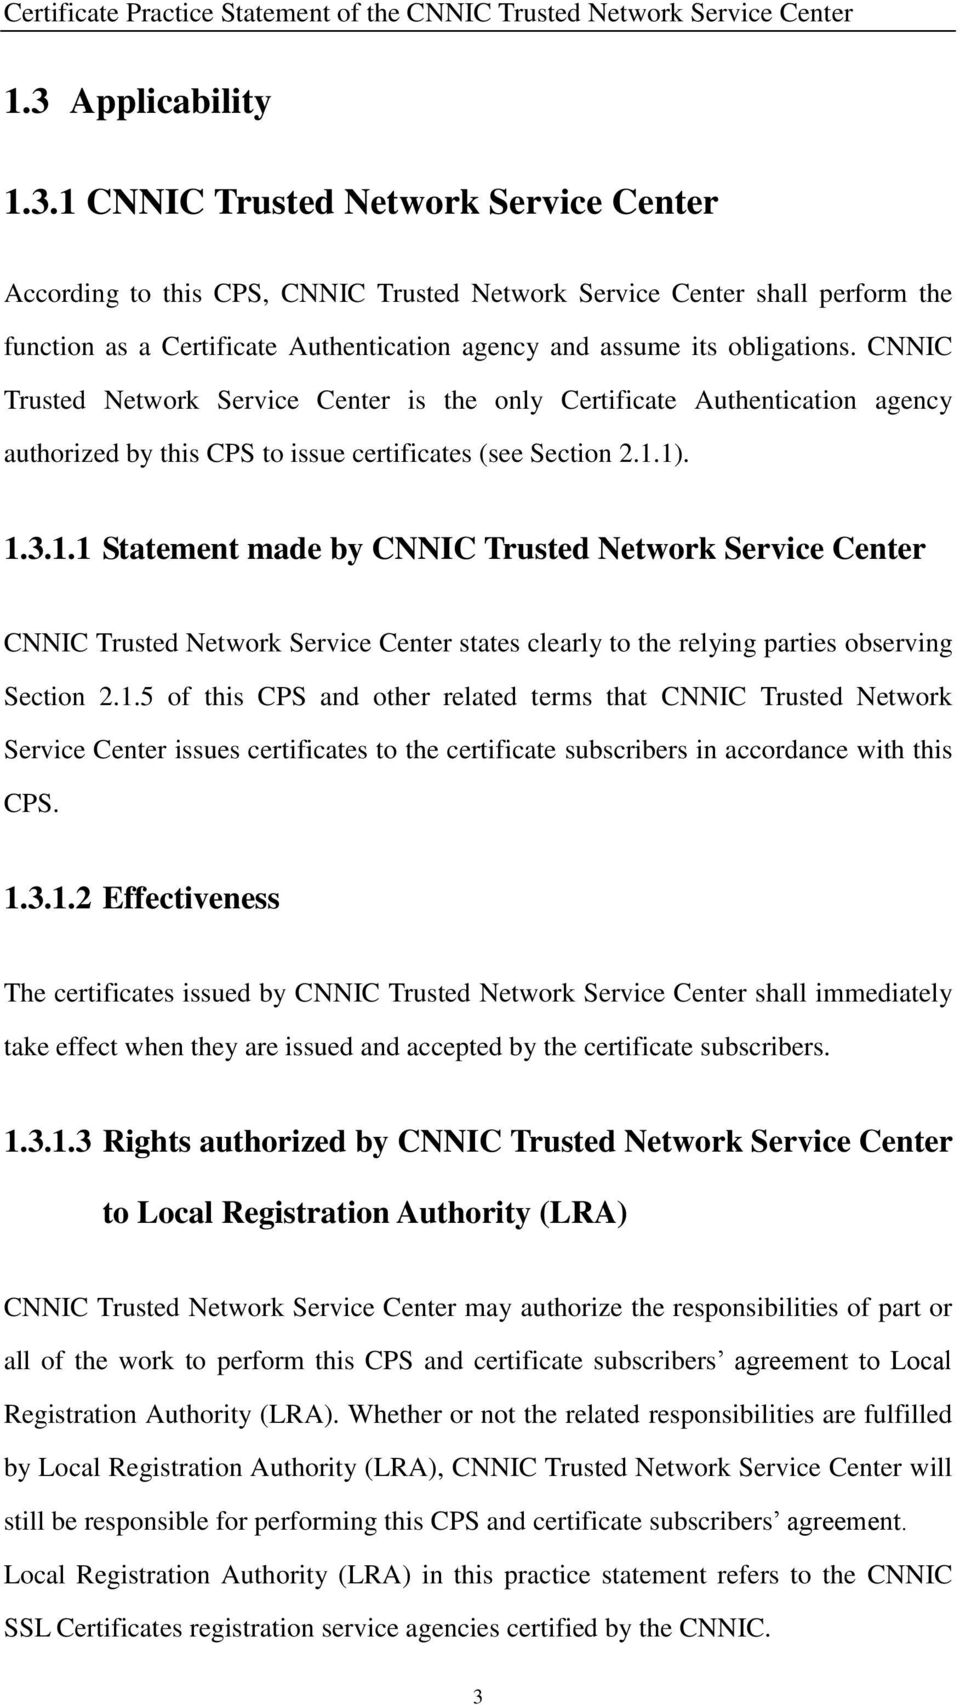 1). 1.3.1.1 Statement made by CNNIC Trusted Network Service Center CNNIC Trusted Network Service Center states clearly to the relying parties observing Section 2.1.5 of this CPS and other related terms that CNNIC Trusted Network Service Center issues certificates to the certificate subscribers in accordance with this CPS.